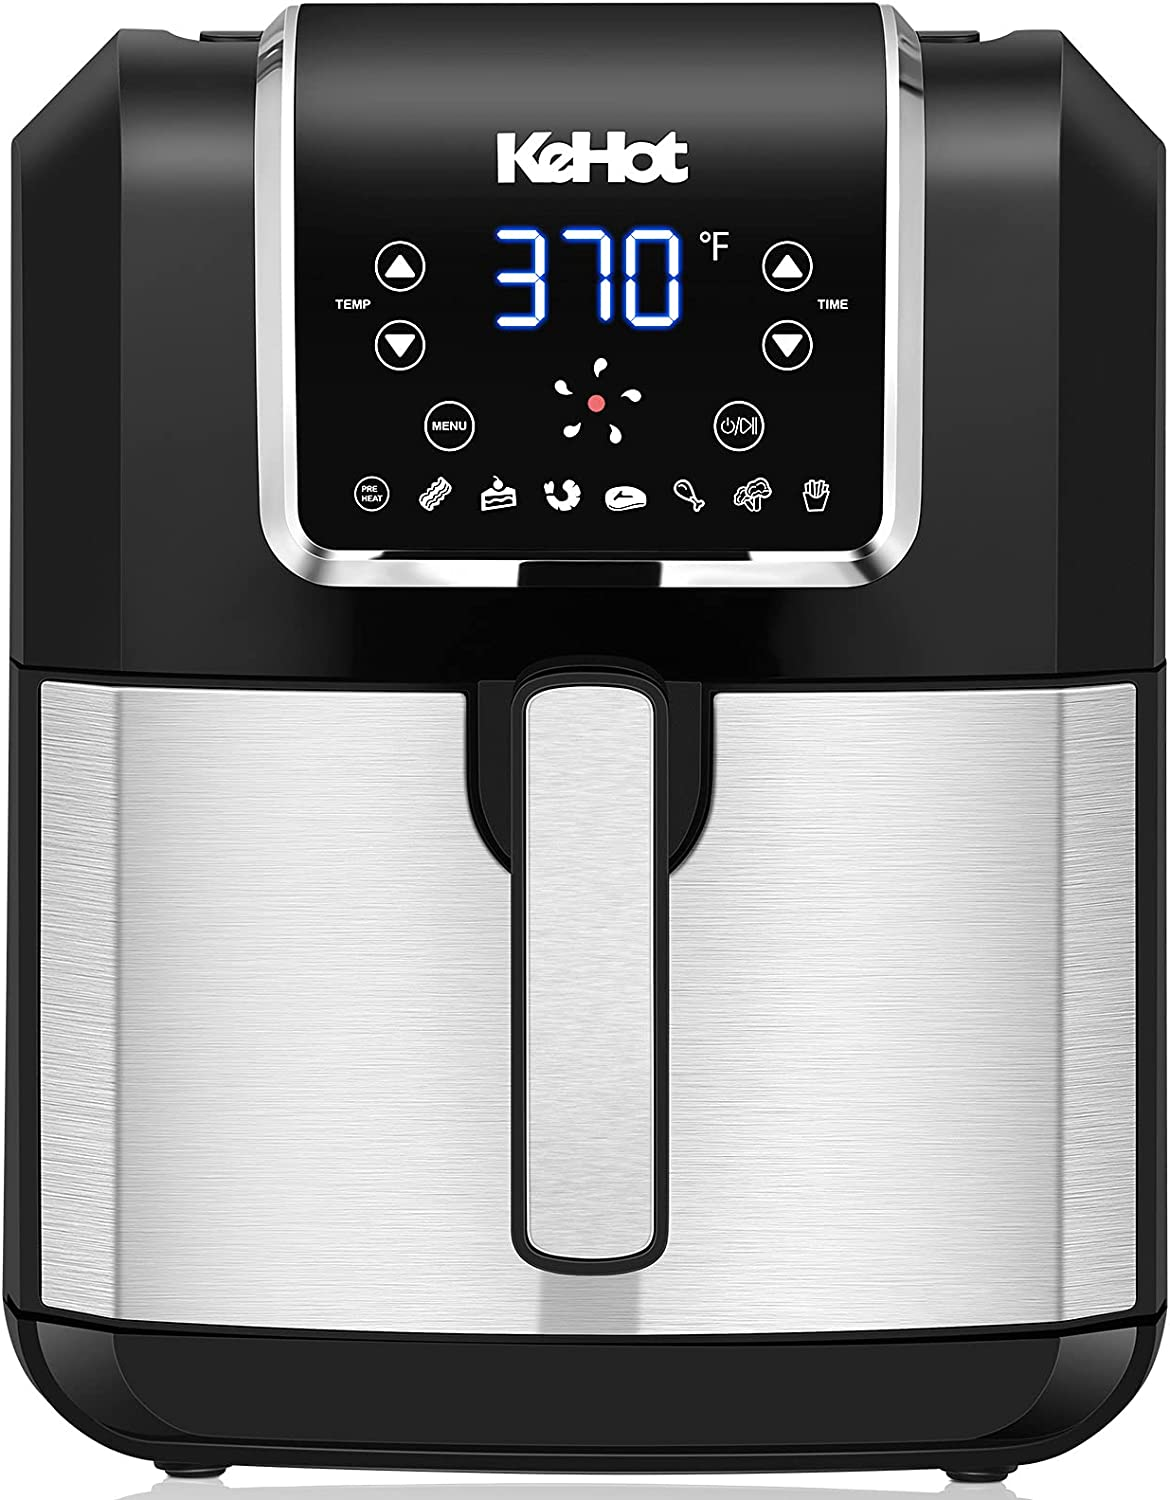 8-in-1 Air Fryer, 6.8 Quart Air Fryers with Built-in Smart Cooking Programs, 1700-Watt Hot Airfryer Digital Touch screen and Temperature Control, ETL Certified